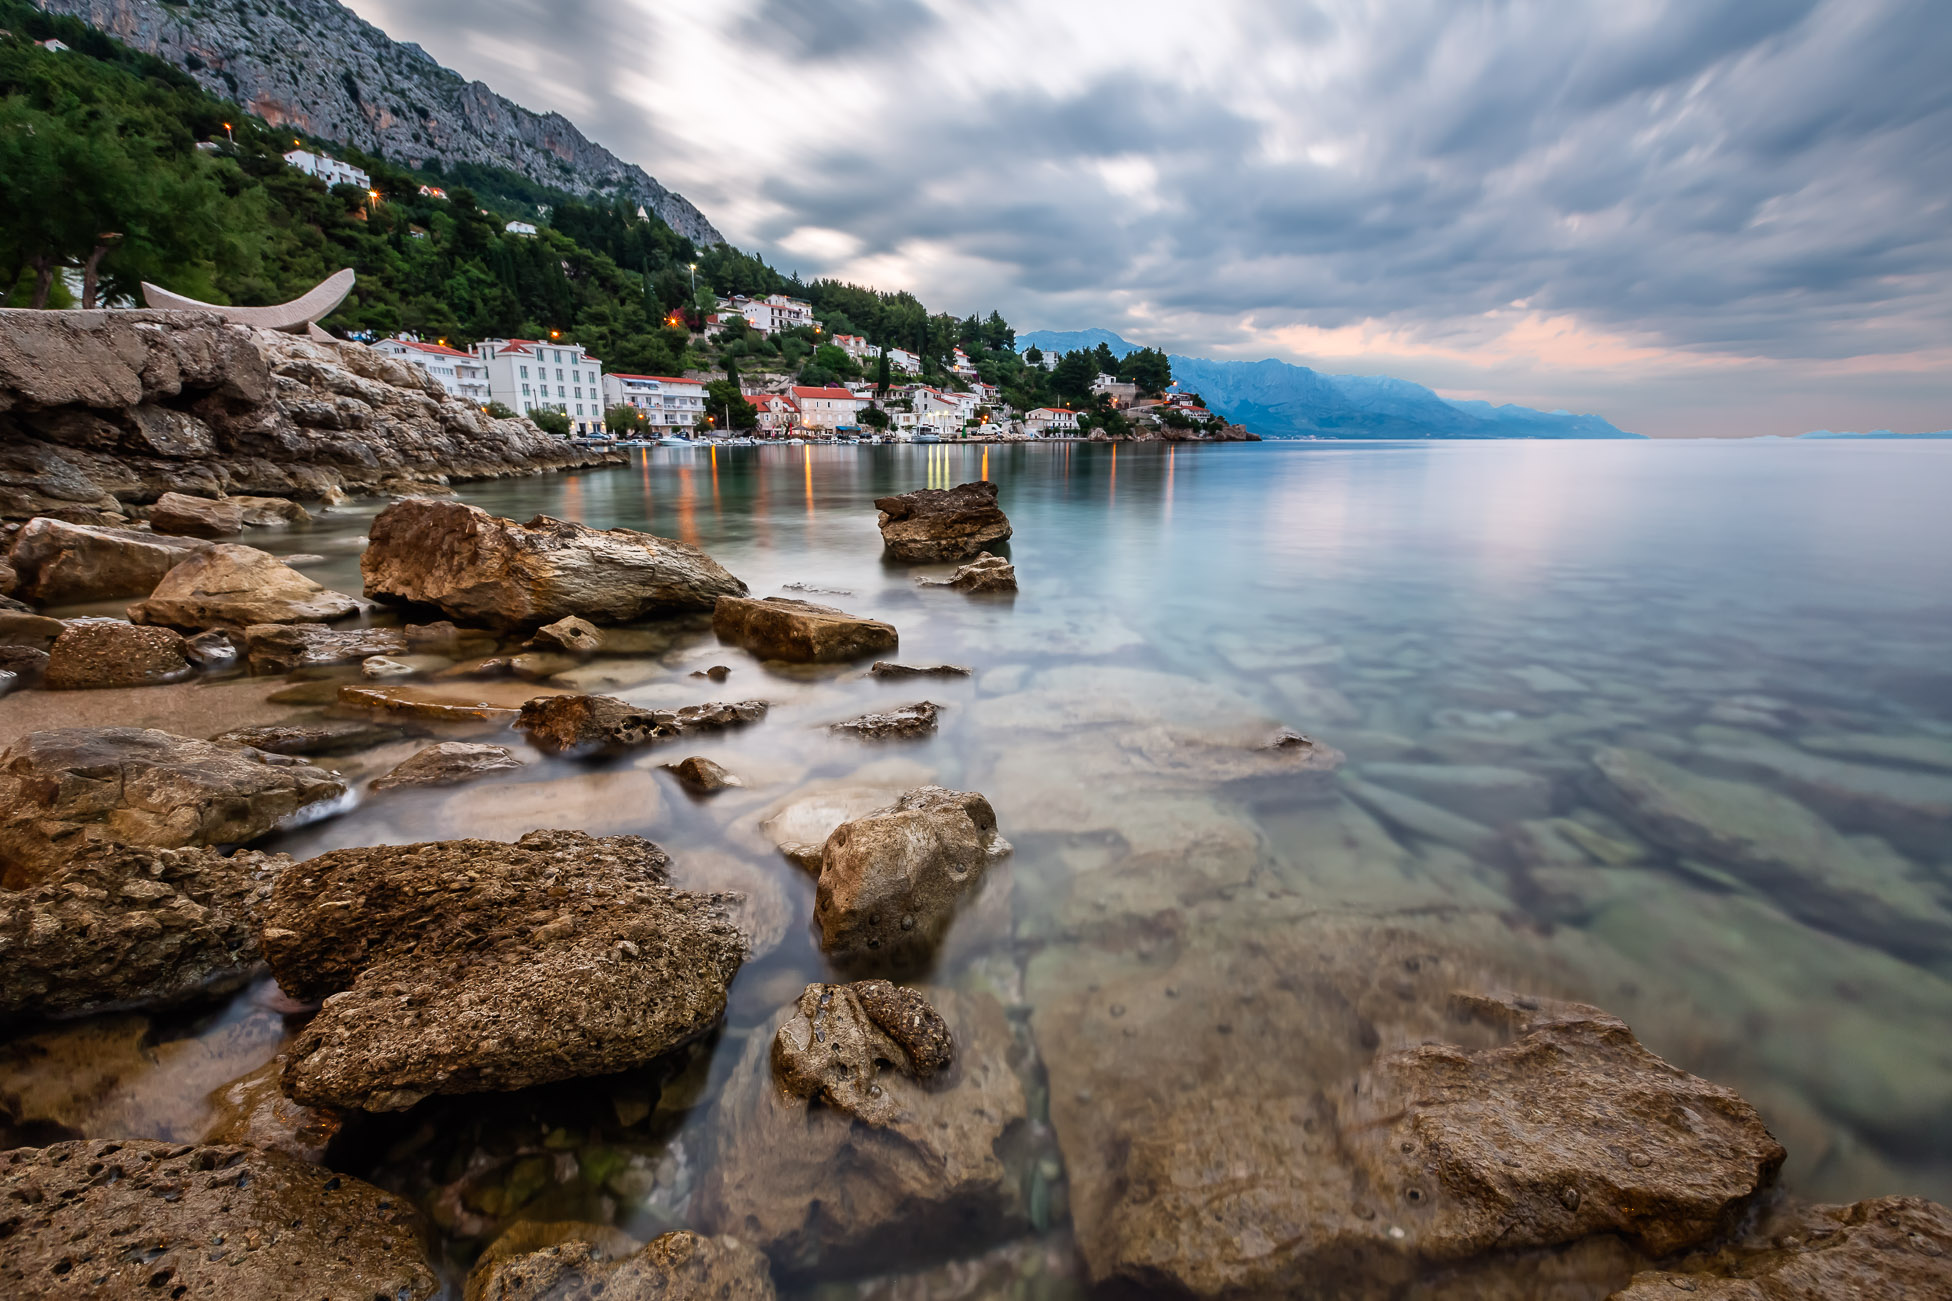 Rocky Beach and Small Village near Omis in the Morning, Dalmatia, Croatia